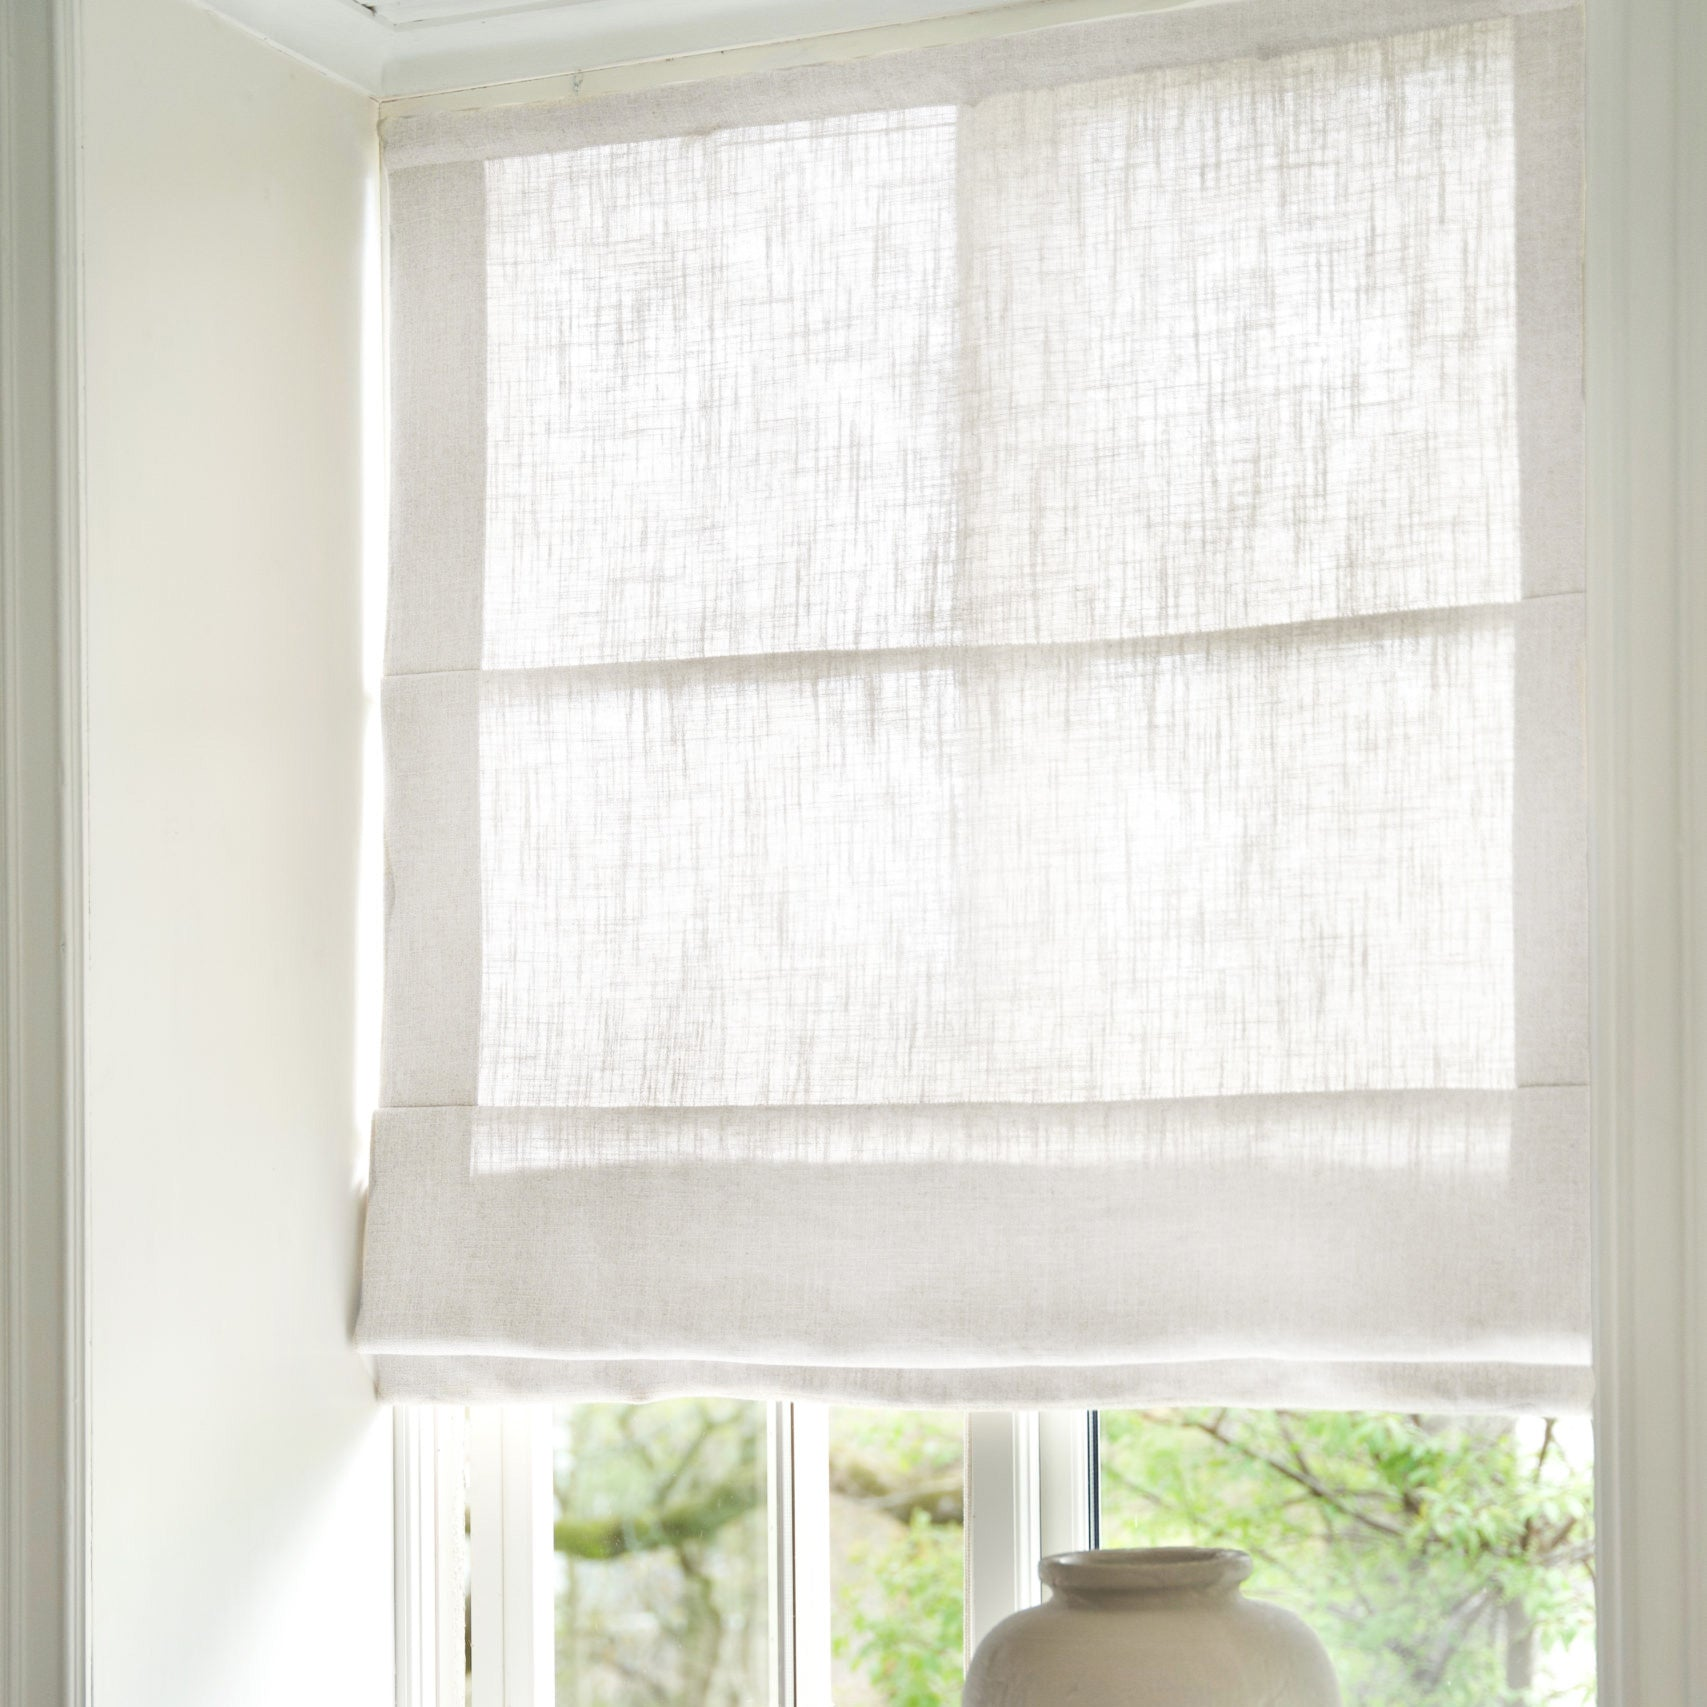 Gotain pure white linen roman blinds